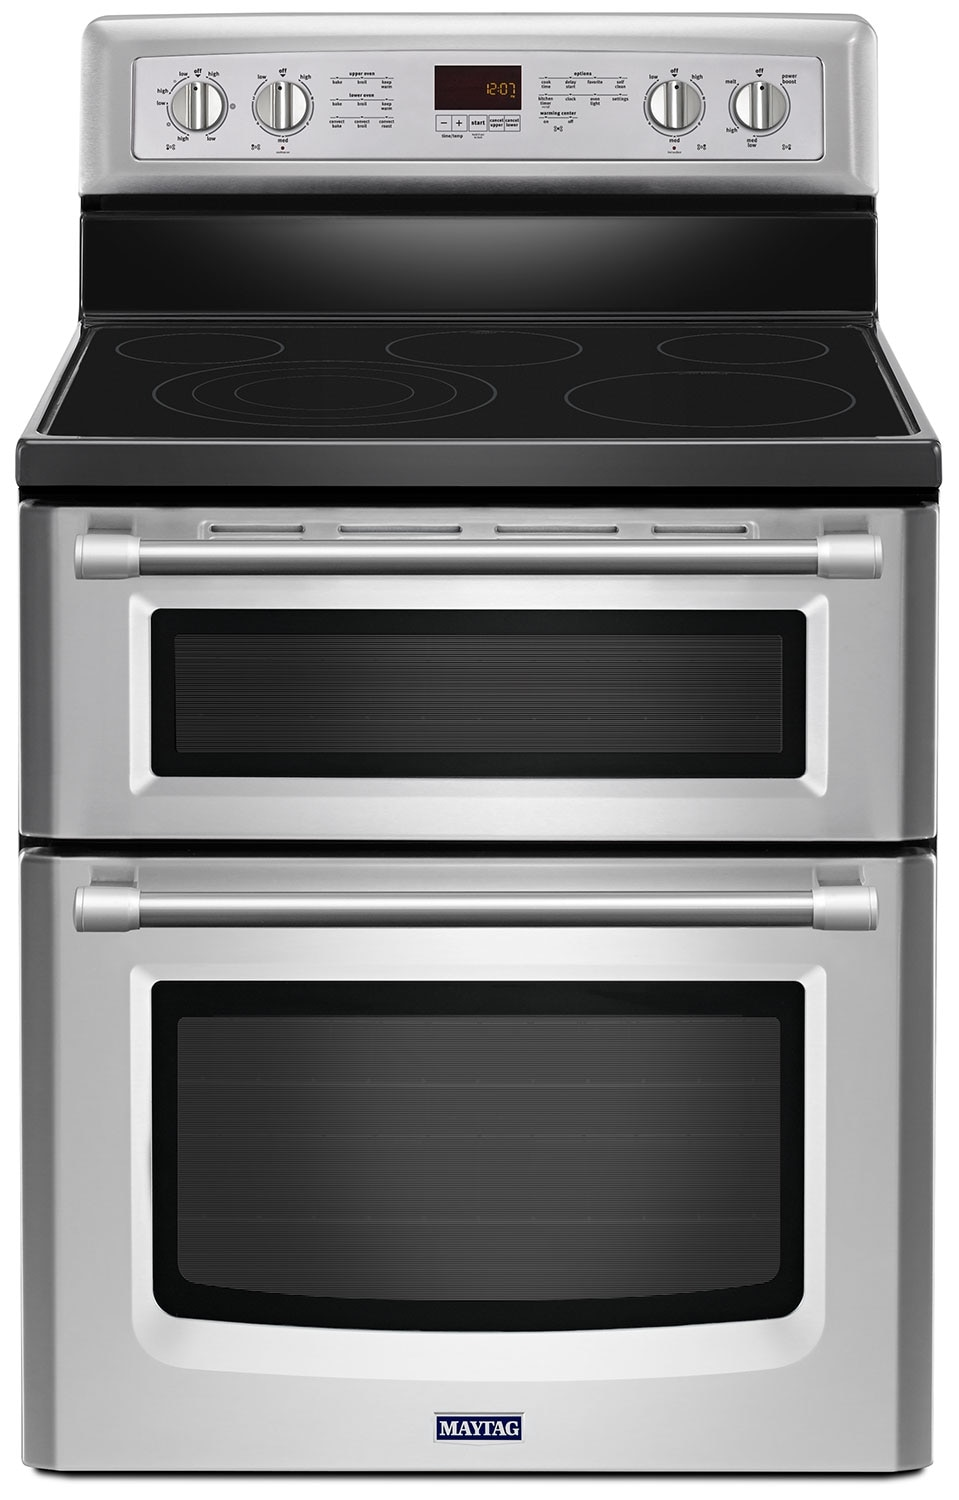 Cooking Products - Maytag 6.7 Cu. Ft. Double Oven Electric Range – YMET8820DS